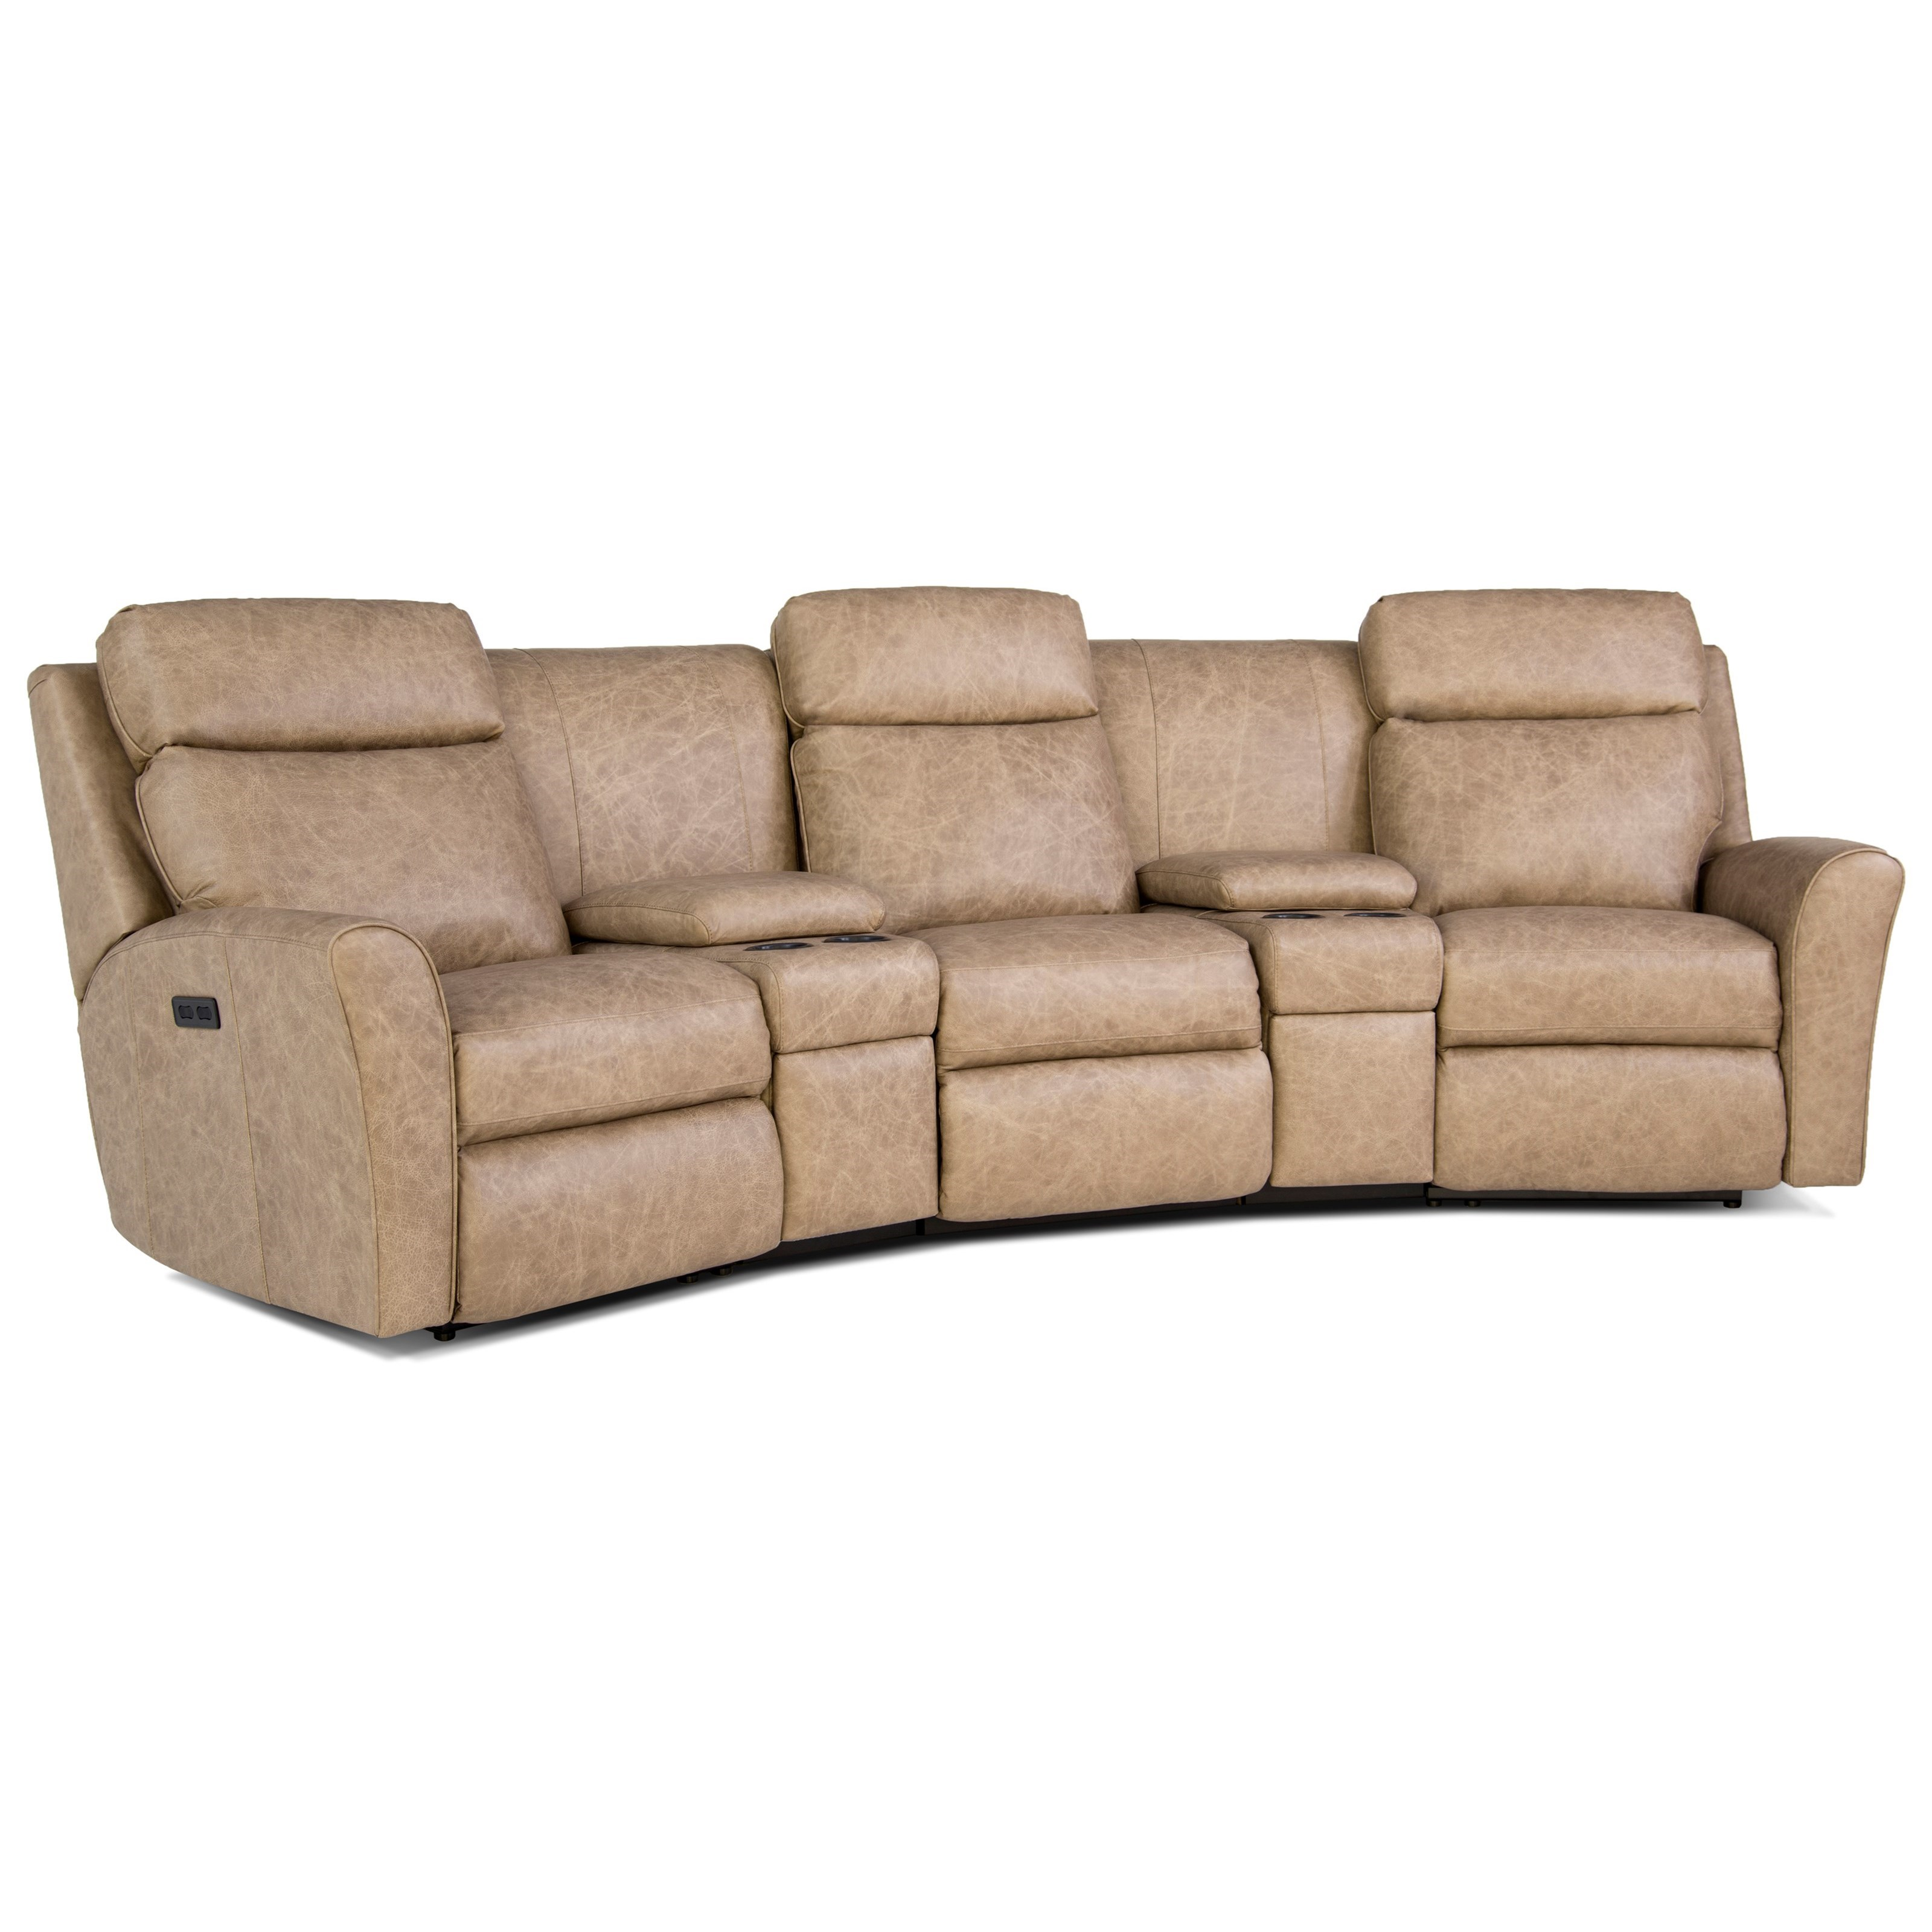 418 Motorized Reclining Conversation Sofa by Smith Brothers at Miller Home